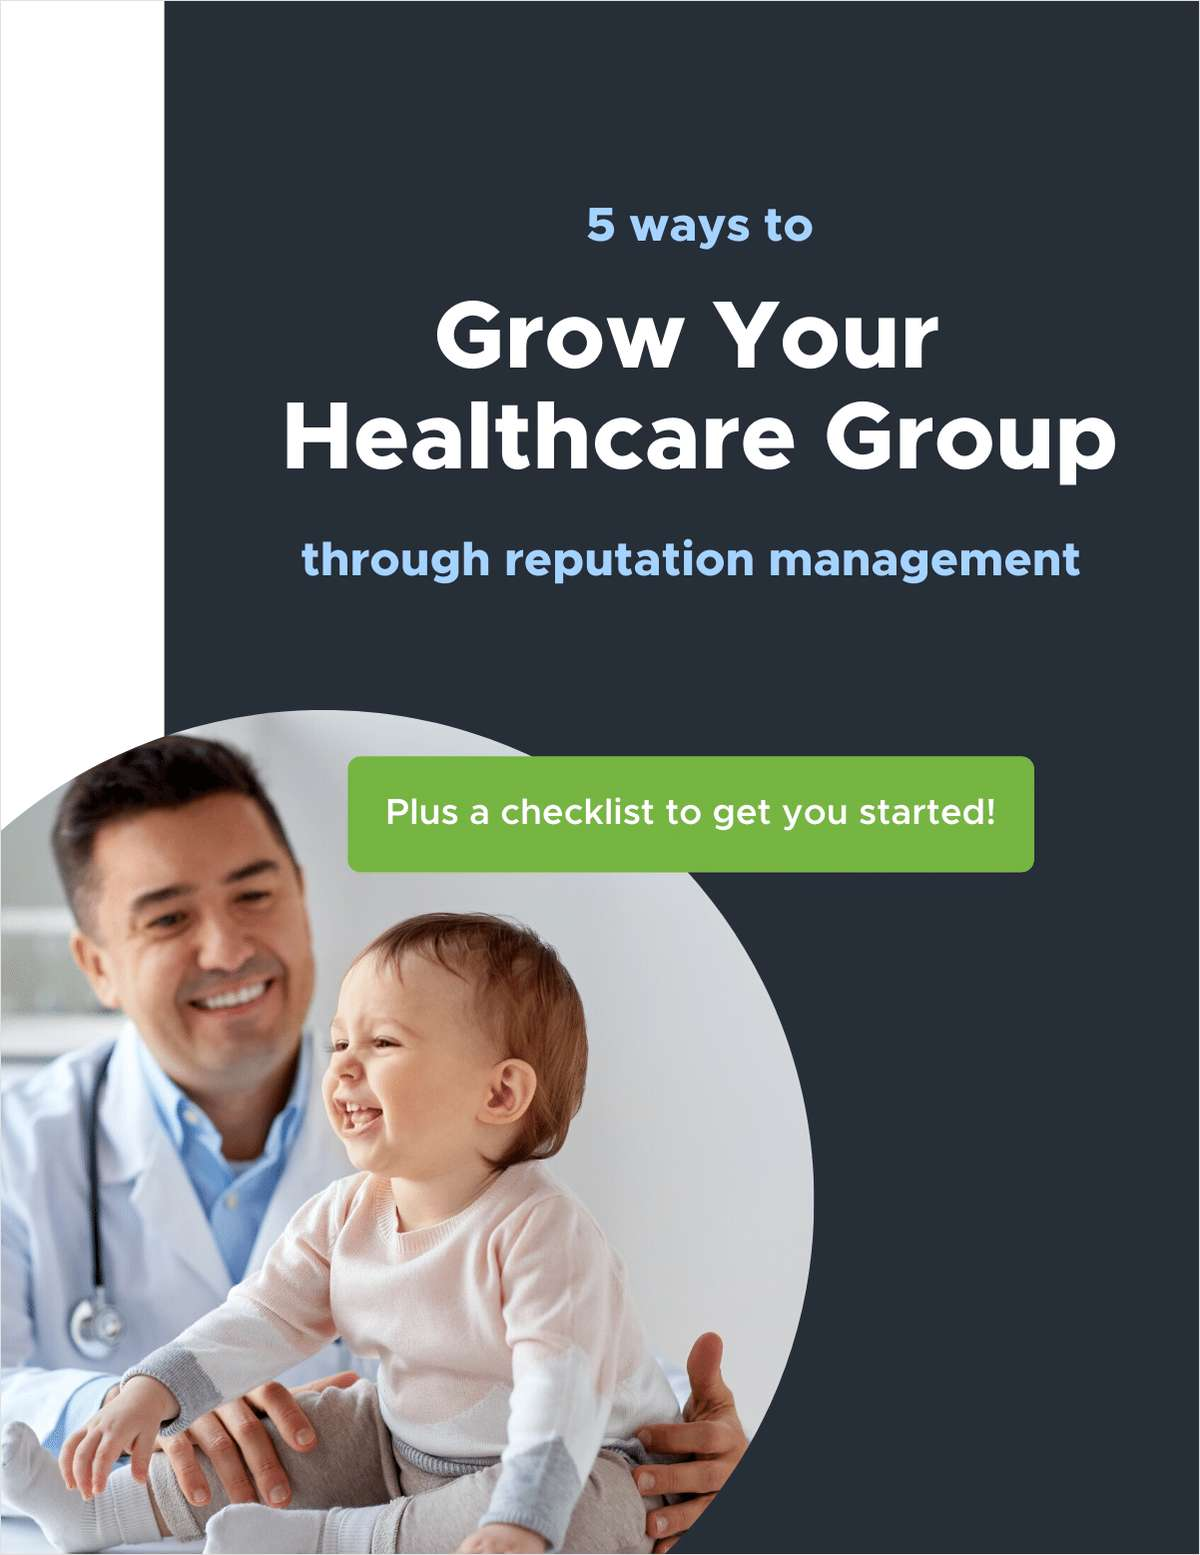 5 Ways to Grow Your Healthcare Group Through Reputation Management